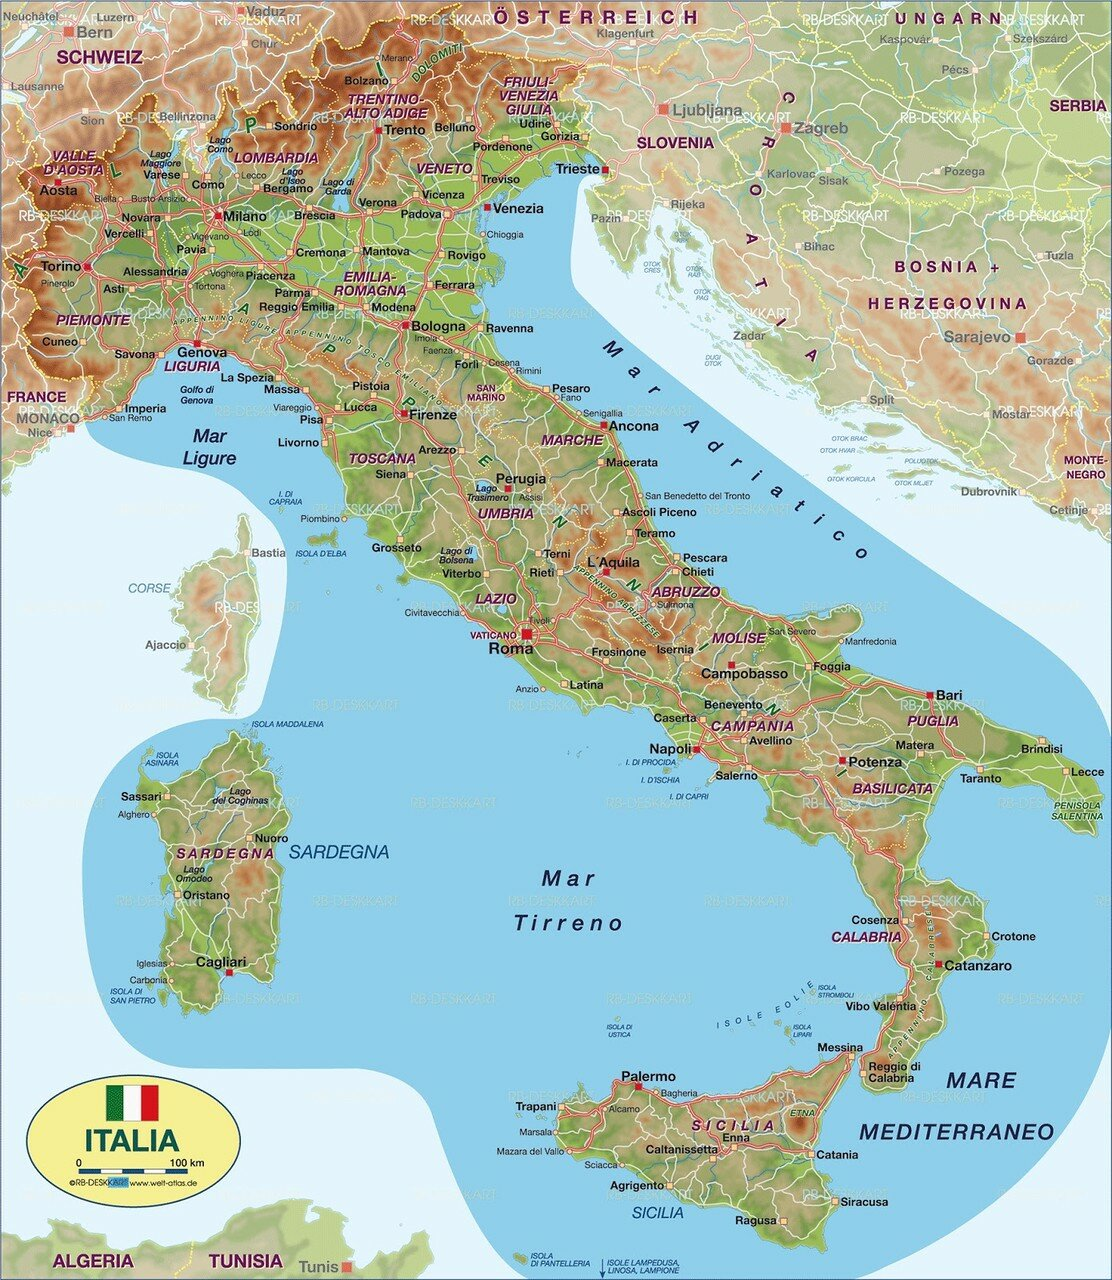 large_detailed_physical_map_of_italy_with_roads_and_cities_for_free.jpg